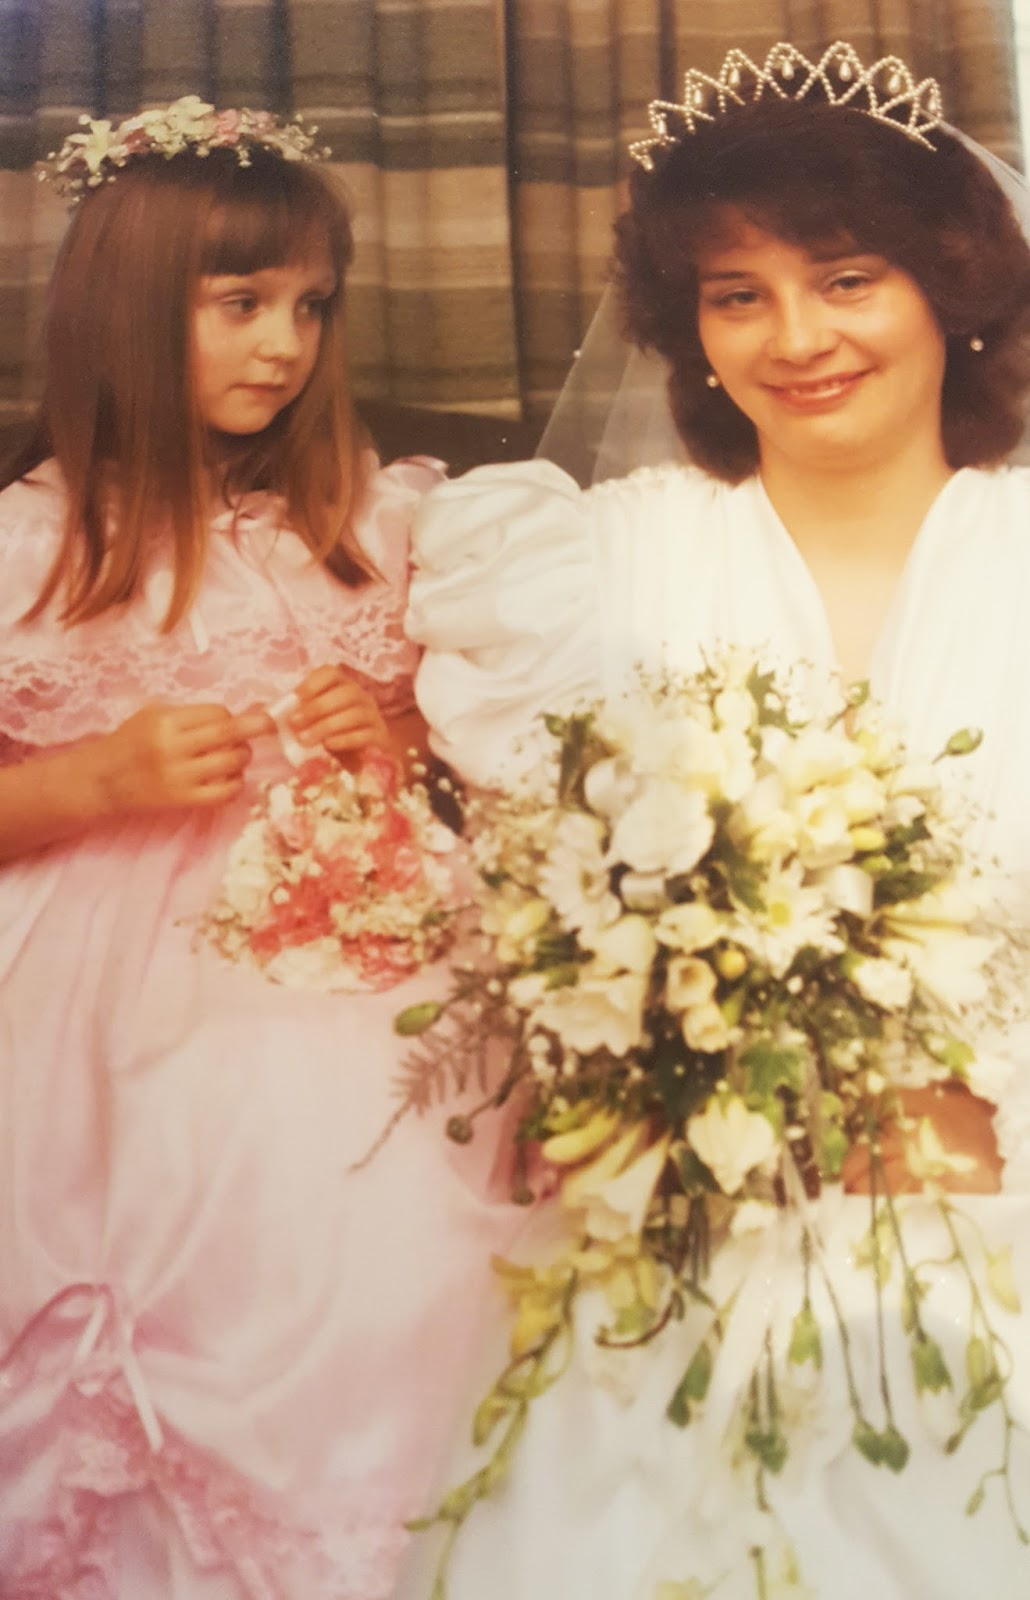 Is This Mutton's Gail Hanlon at her first wedding with bridesmaid Danielle Wood